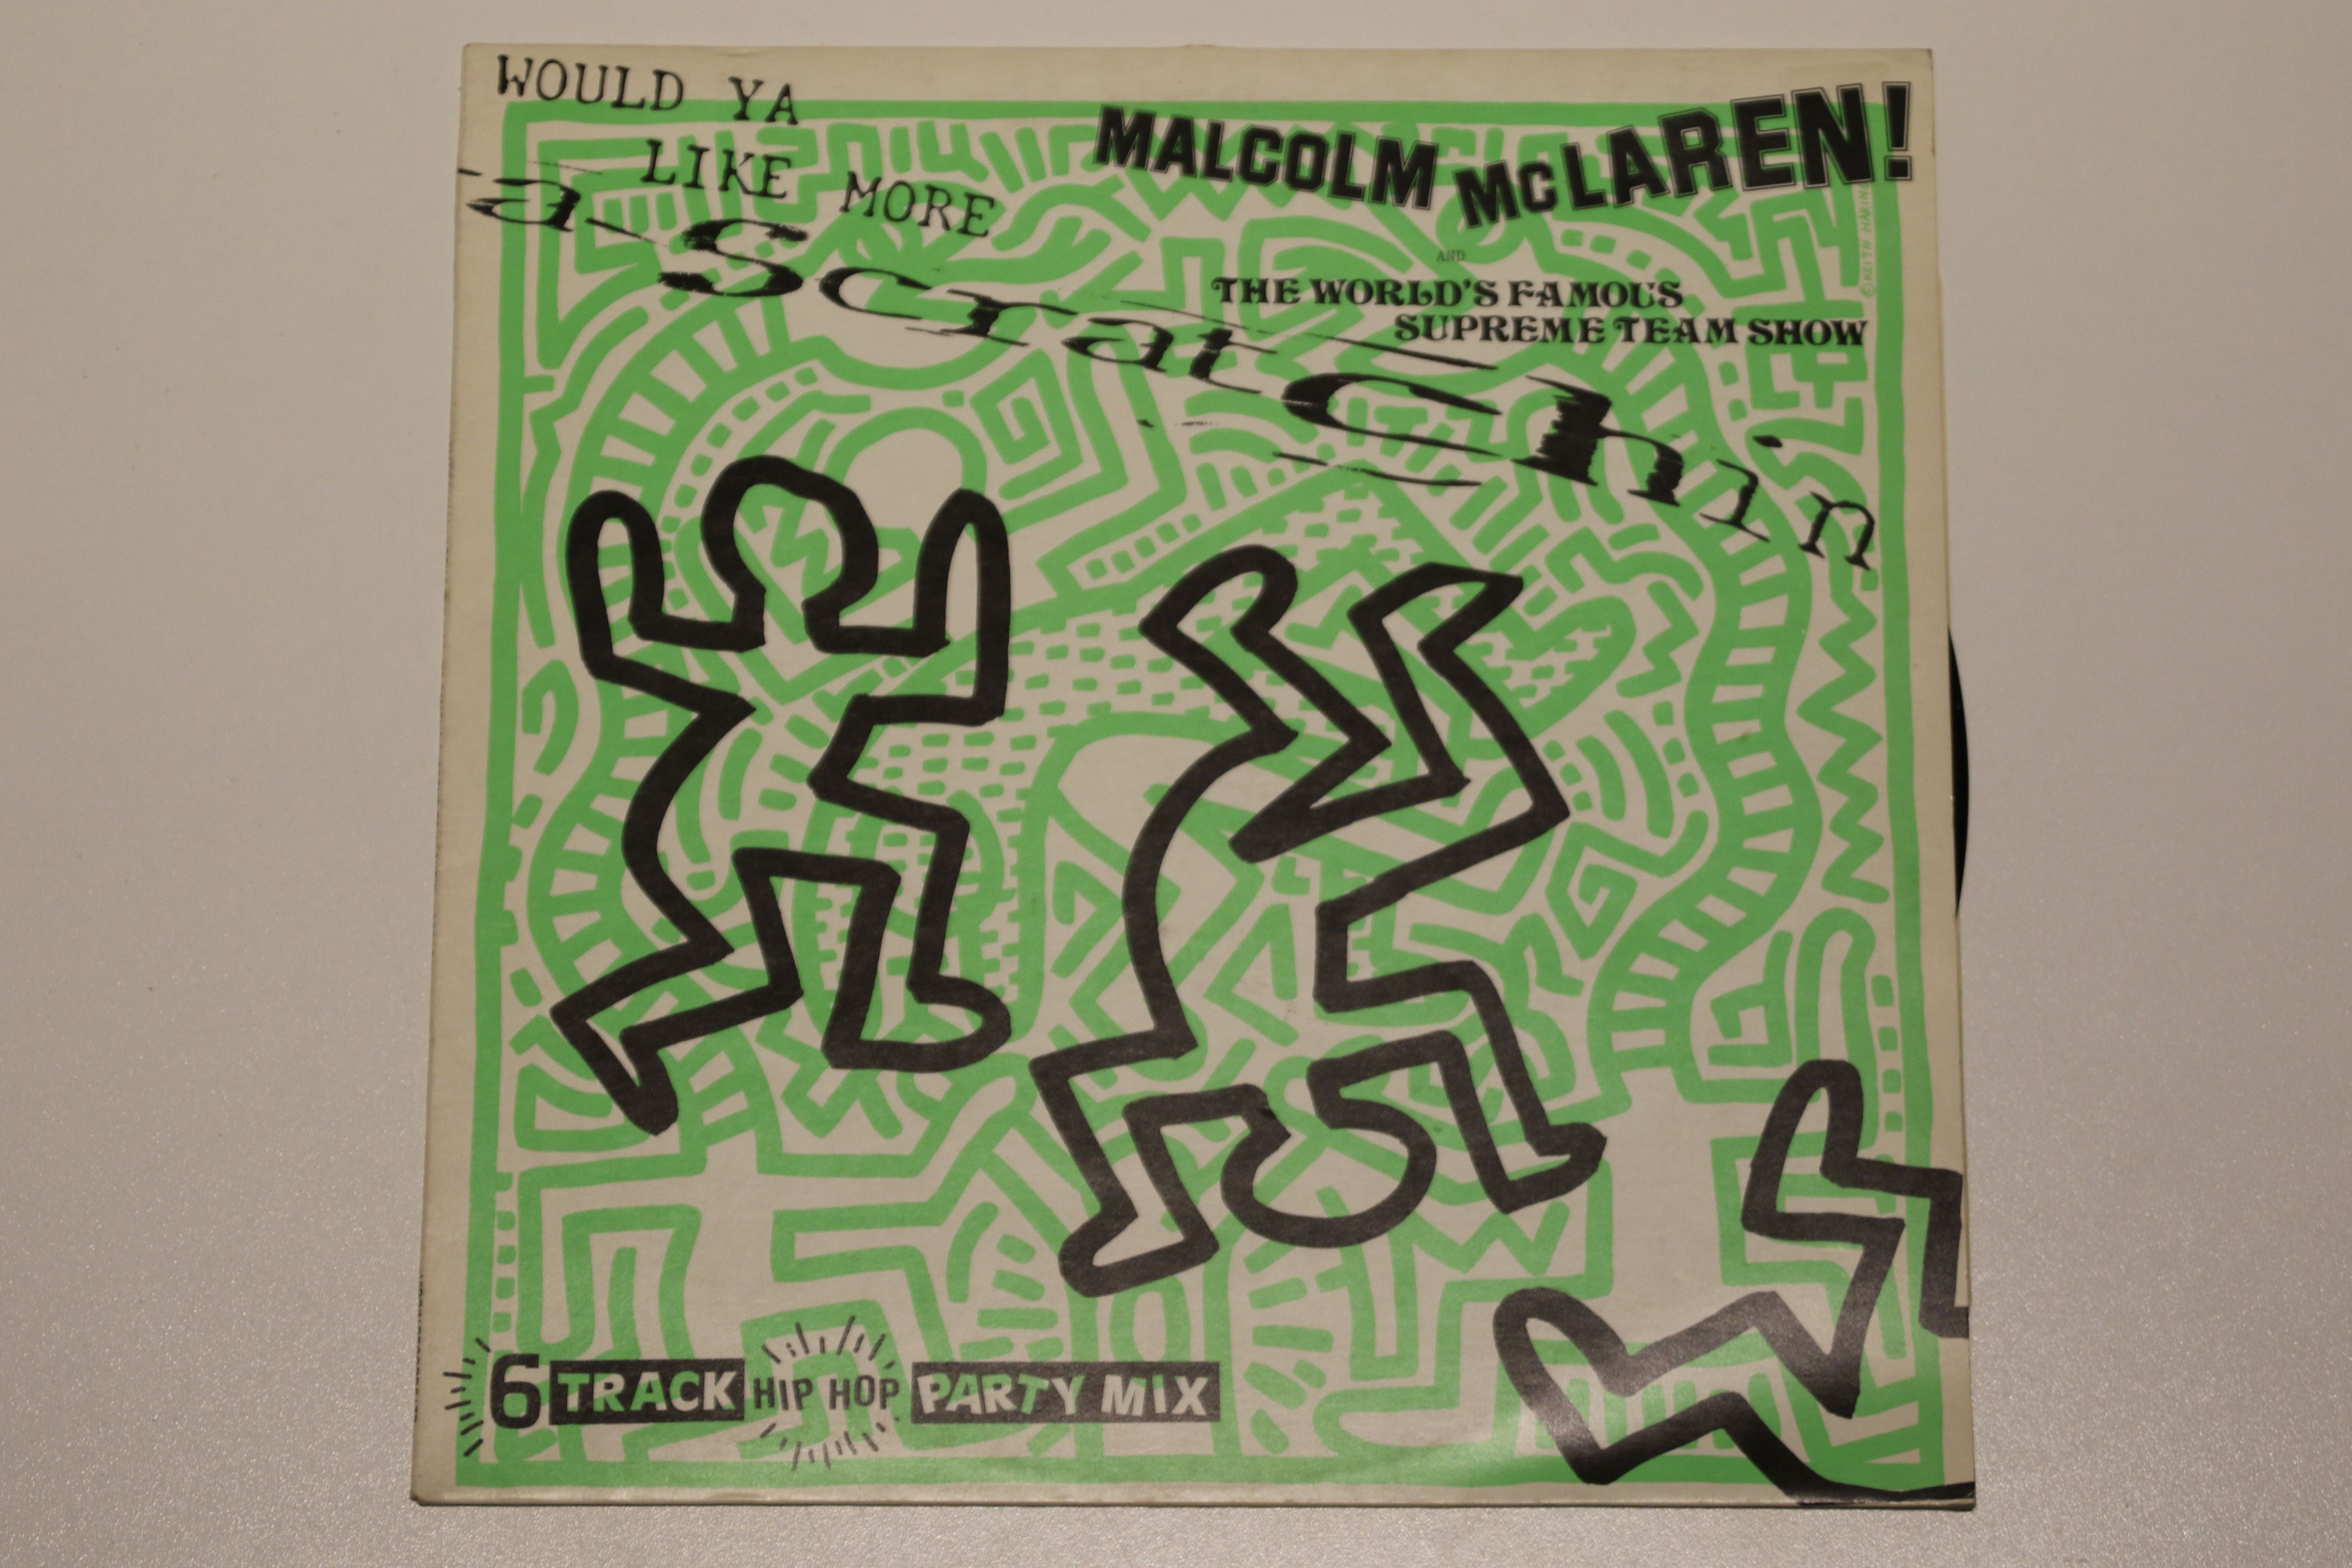 Malcolm McLaren and the World's Famous Supreme Team Show - Would Ya